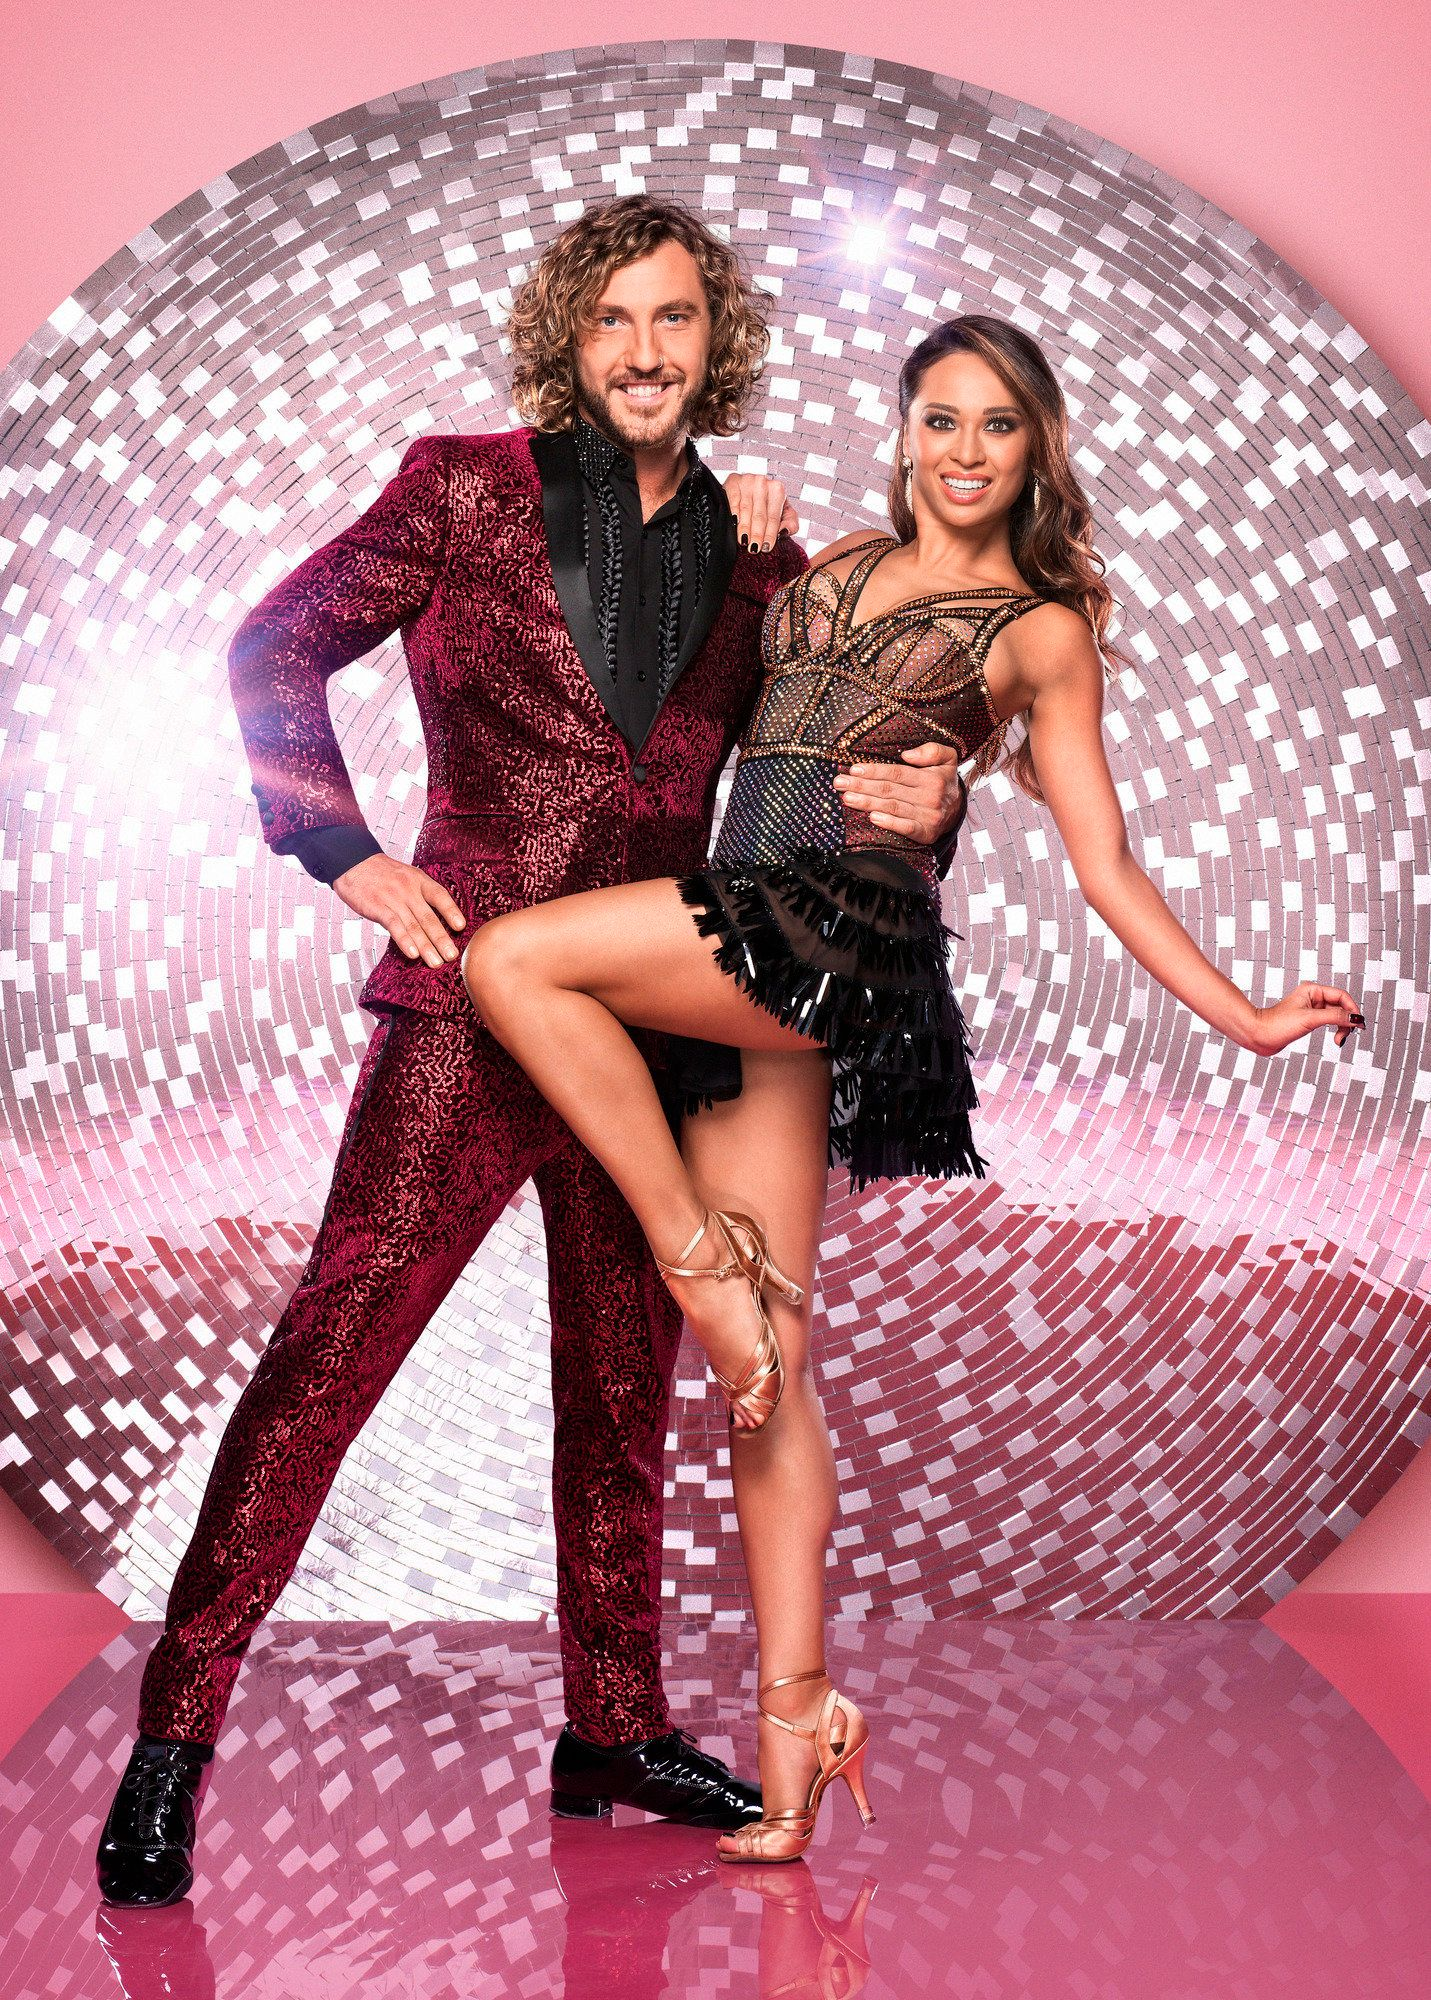 Seann Walsh Makes Light Of 'Strictly' Kiss Scandal In First Comedy Gig Since Appearing On The